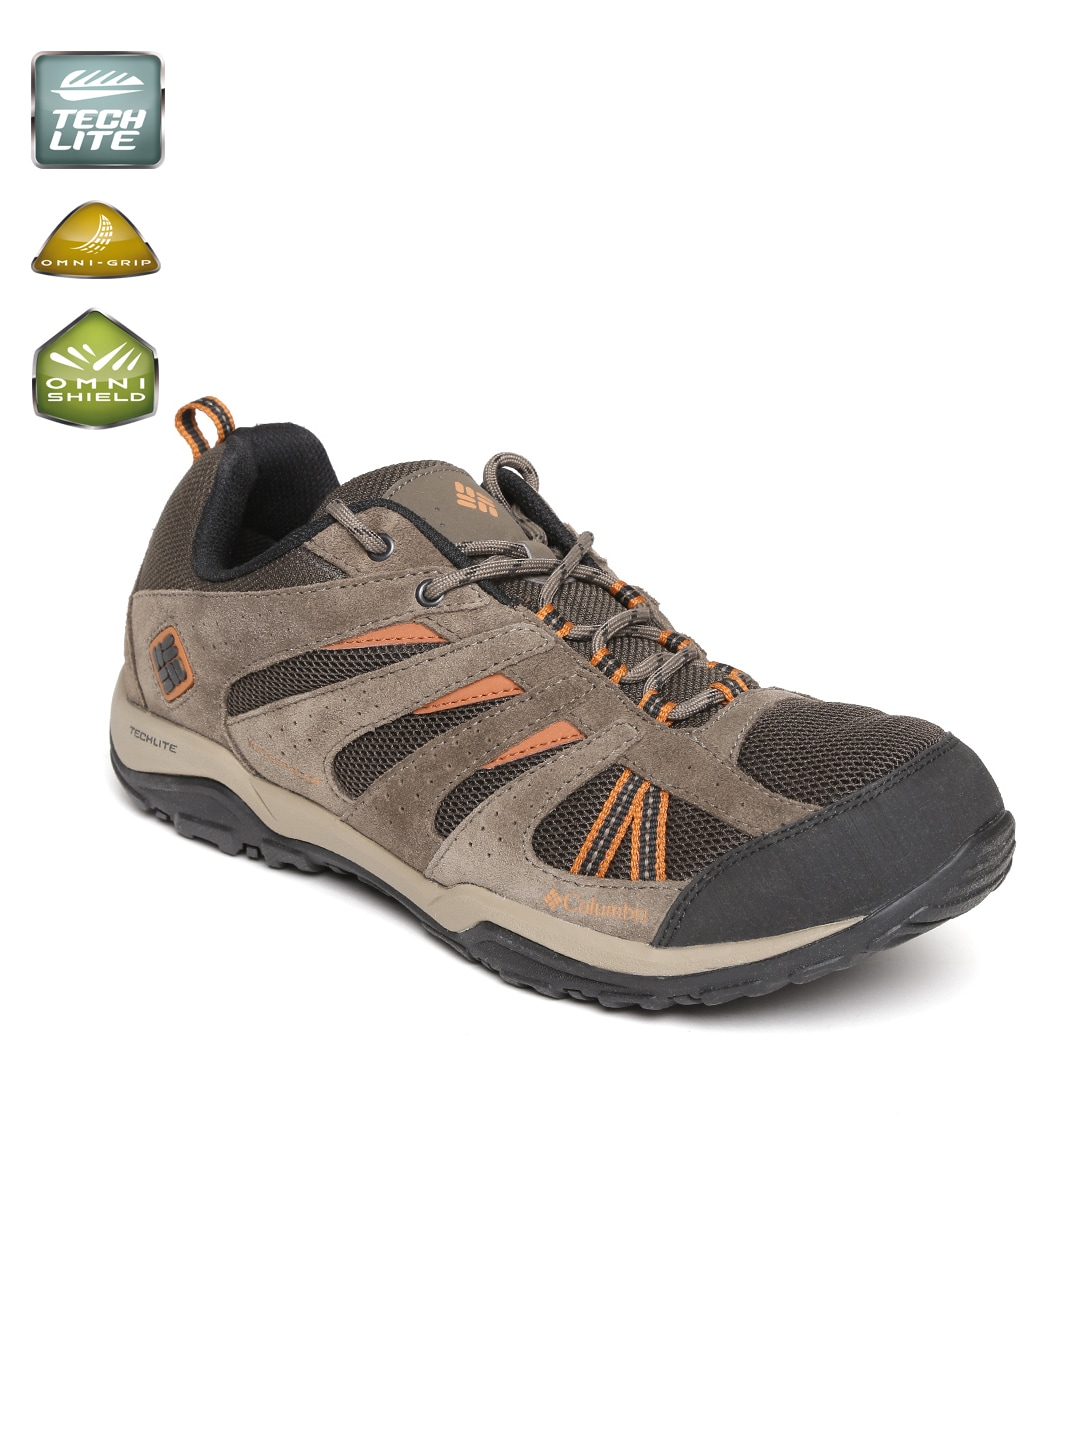 6759b92ae139 Columbia - Buy Columbia Clothing   Accessories online